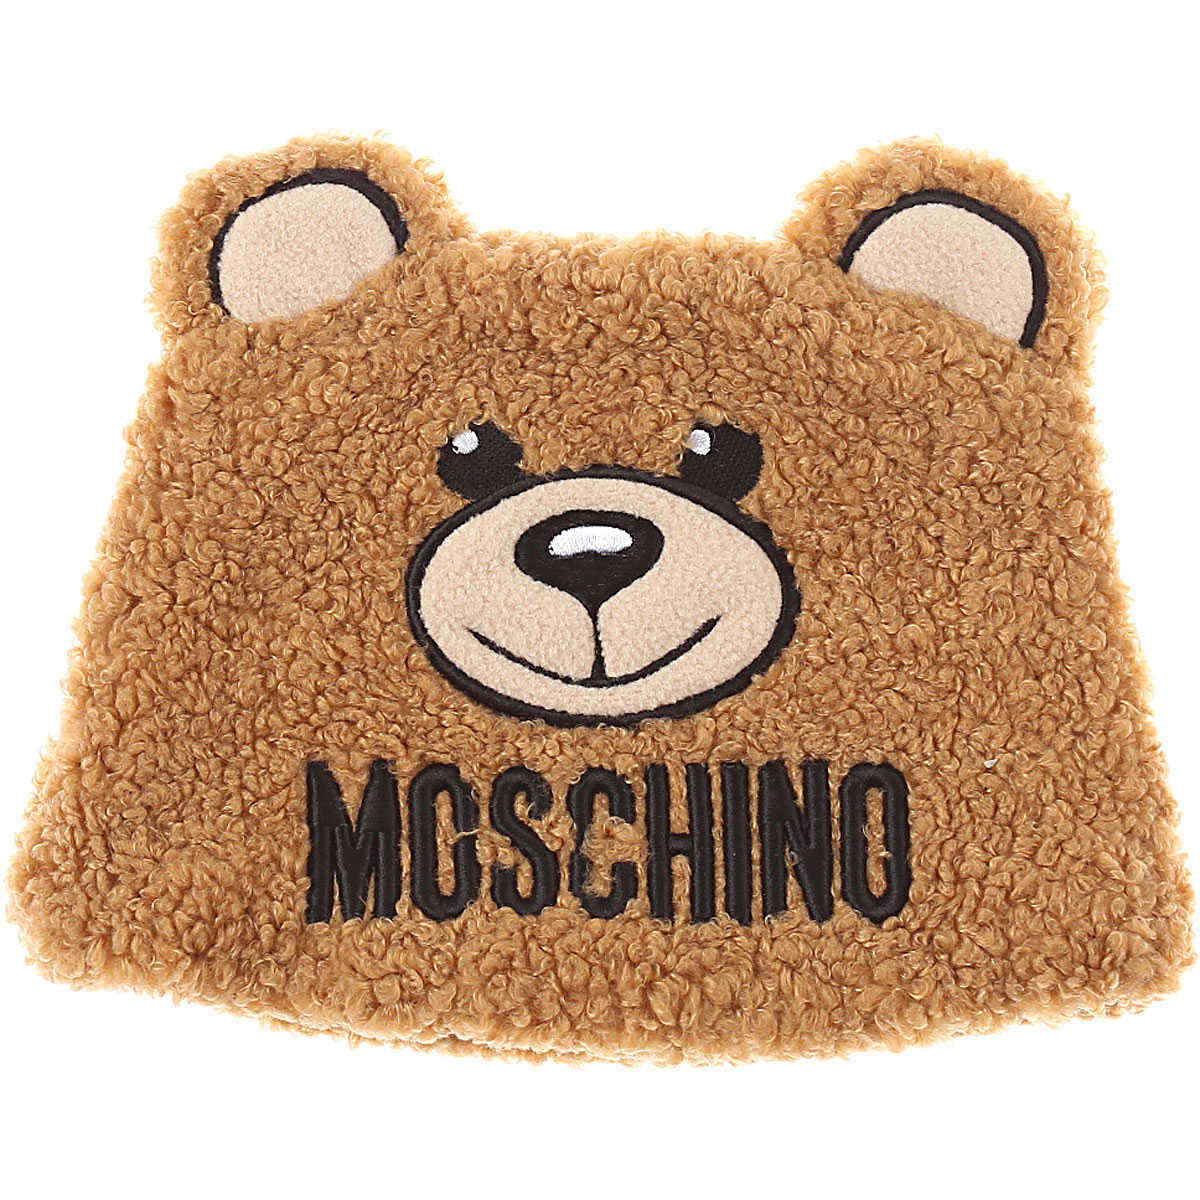 Moschino Baby Hats for Boys Camel - GOOFASH - Mens HATS